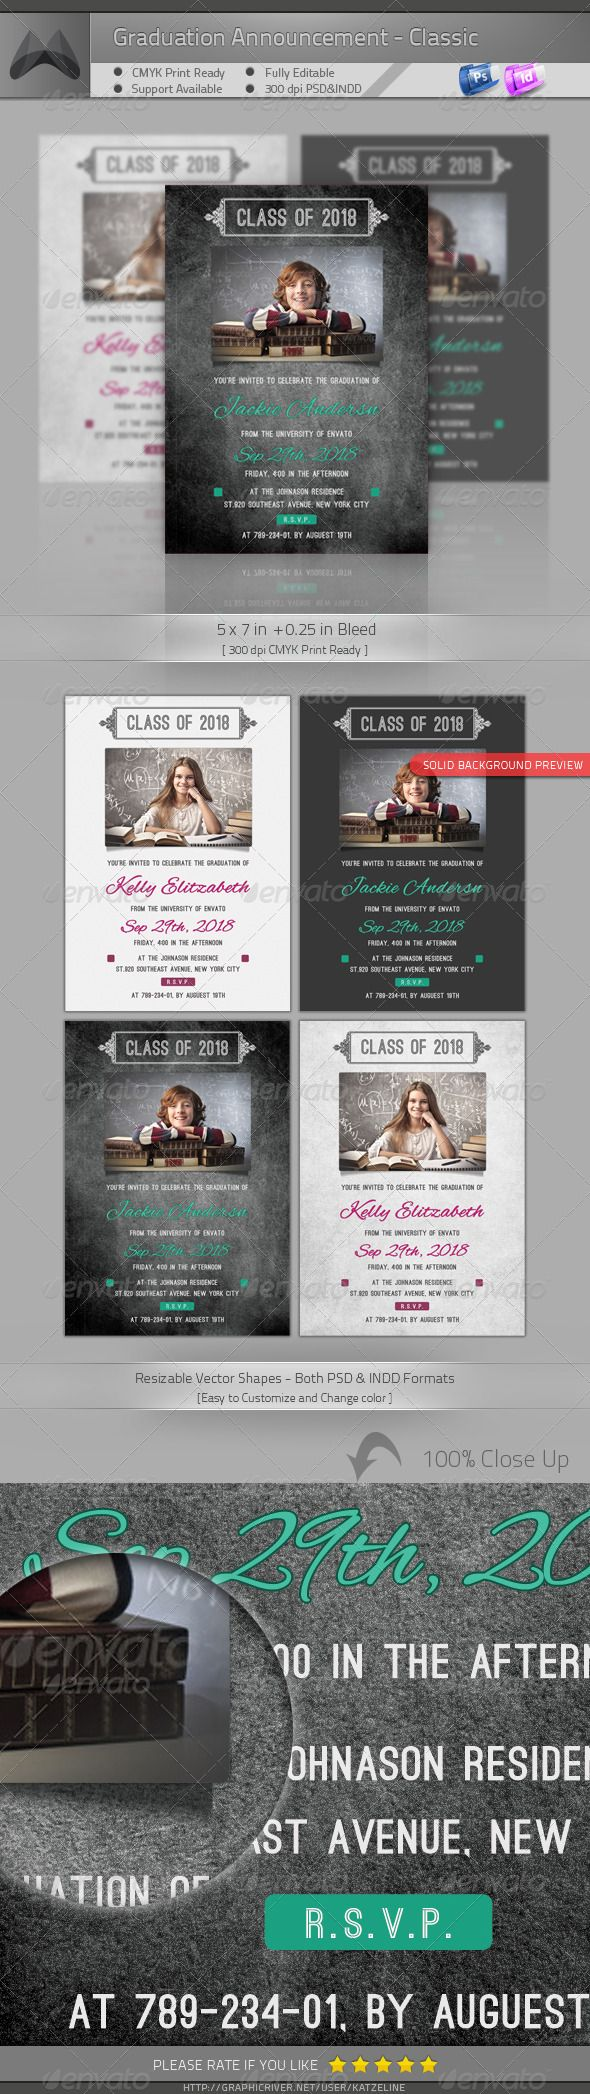 Graduation Announcement - Classic | Change colour, Template and Fonts